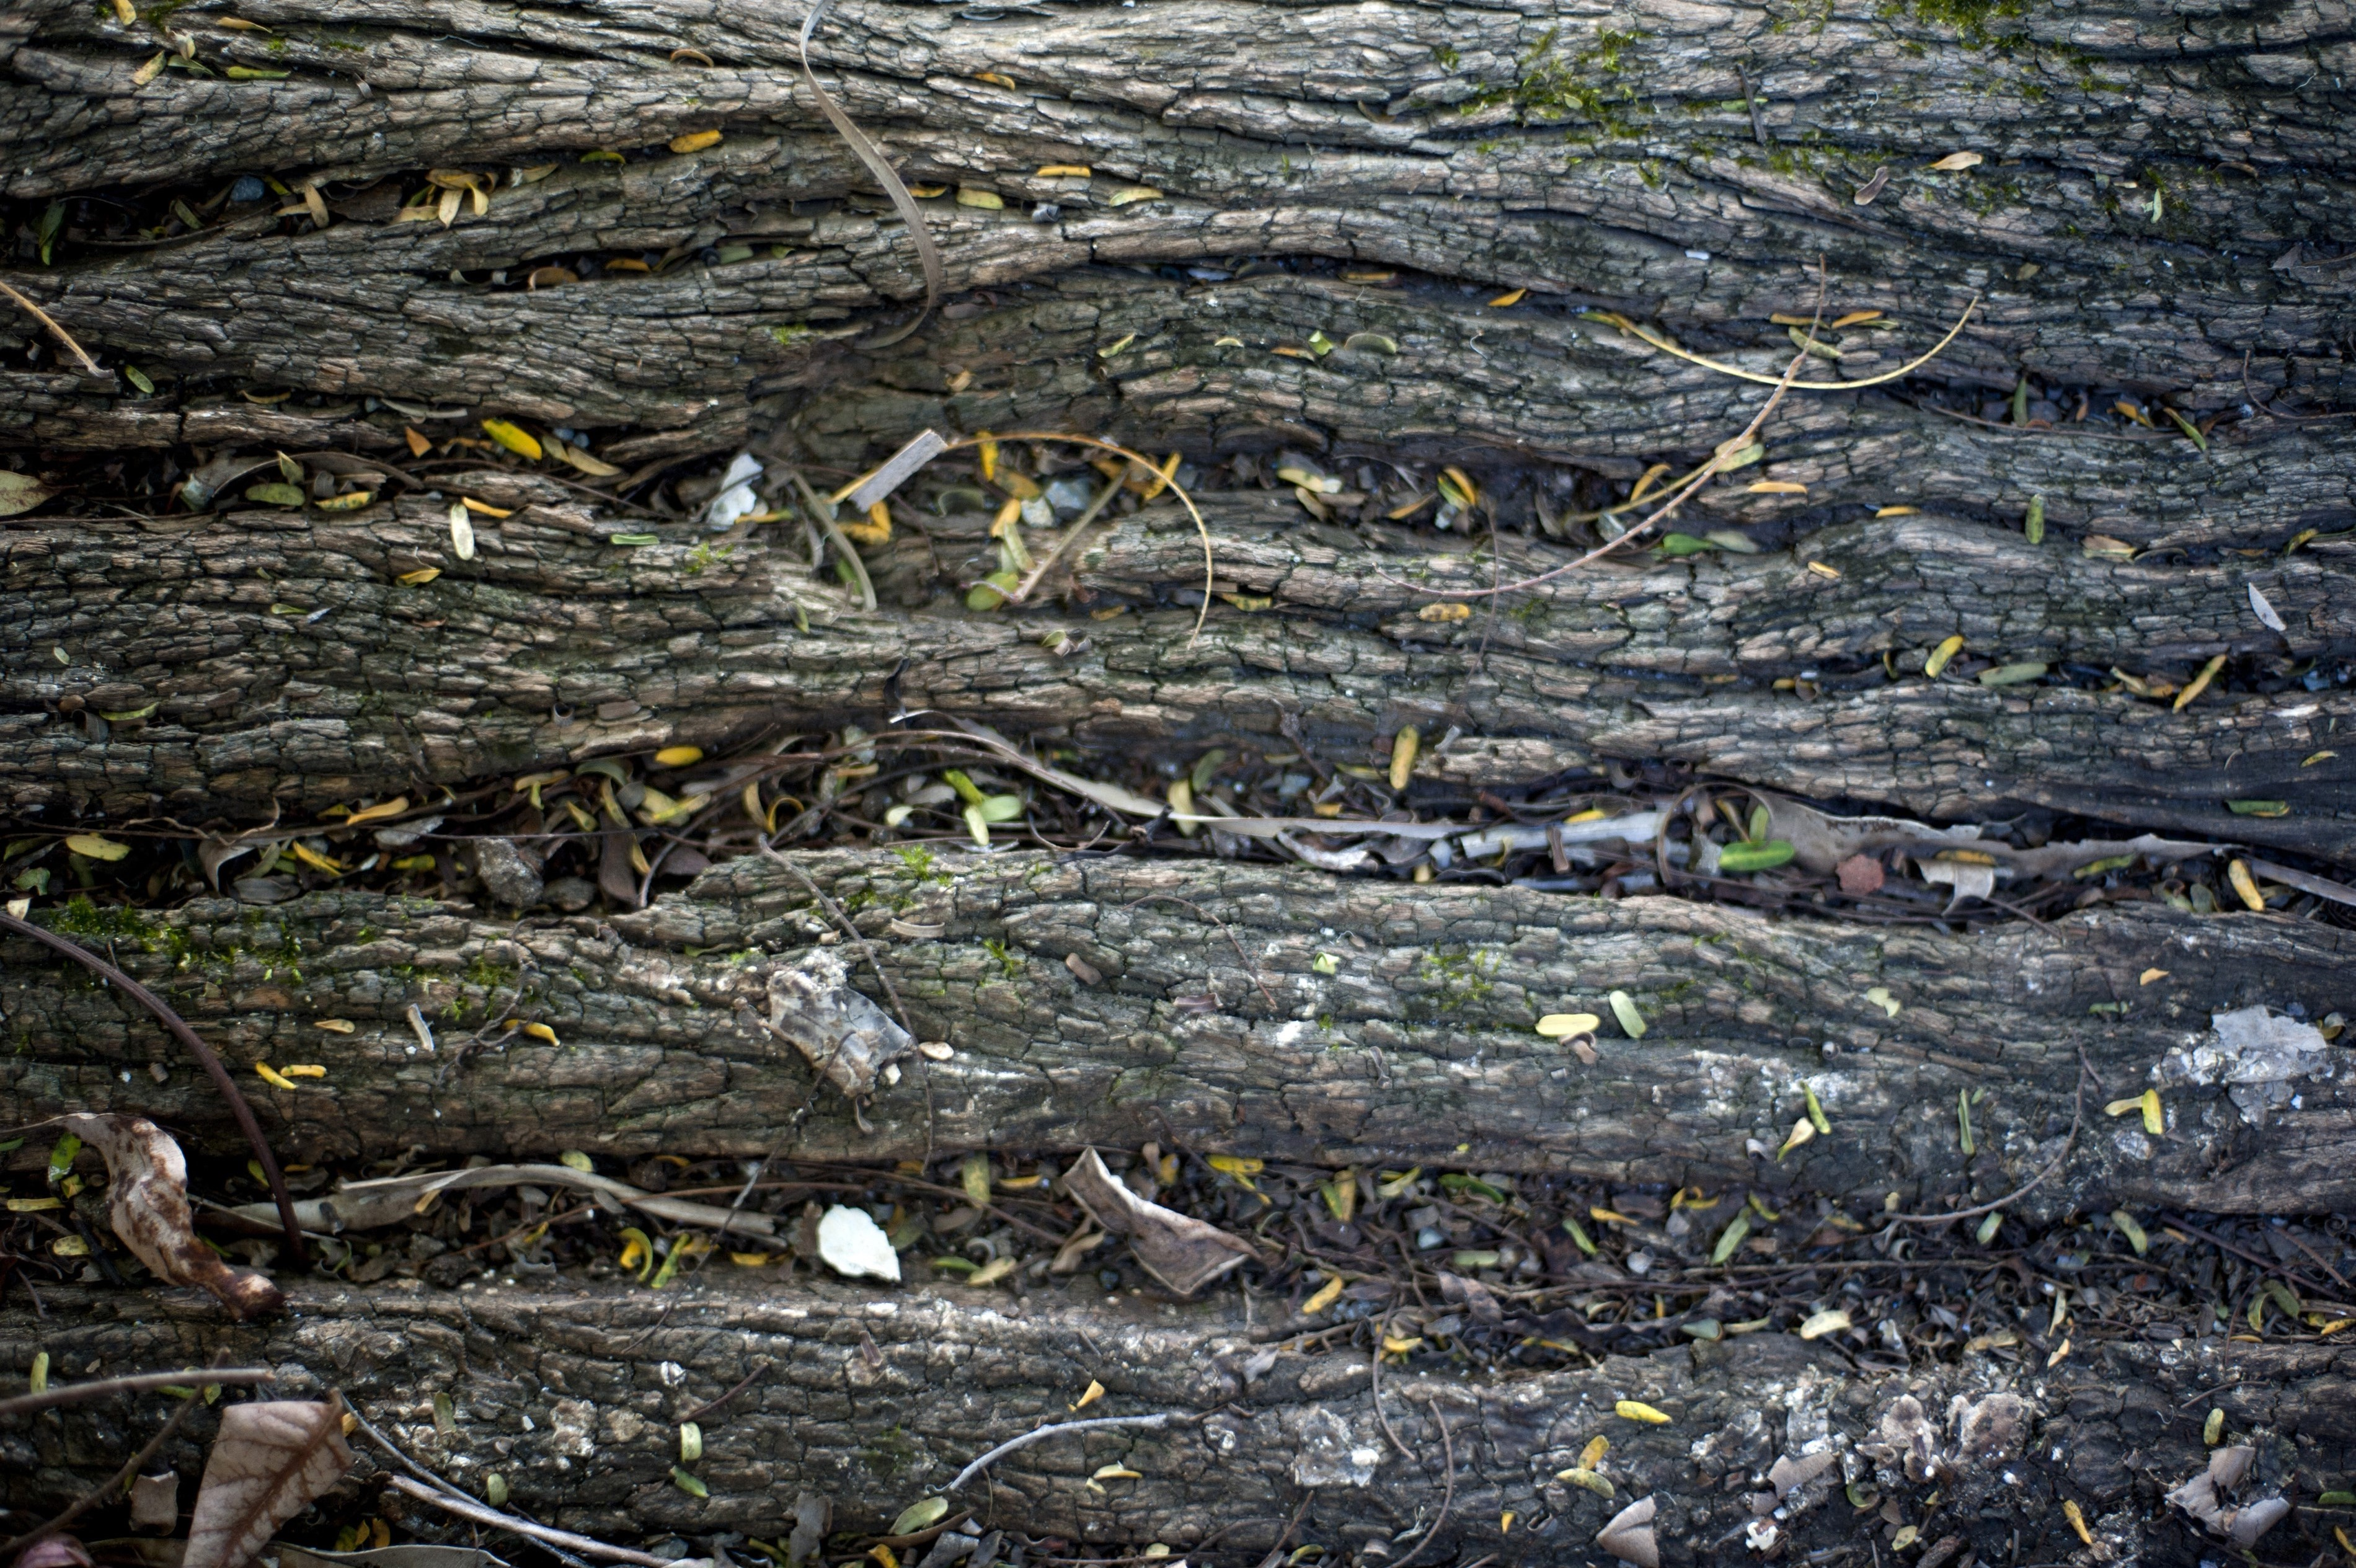 Closeup background texture of wood rot in damp wood showing the destruction of the natural structure